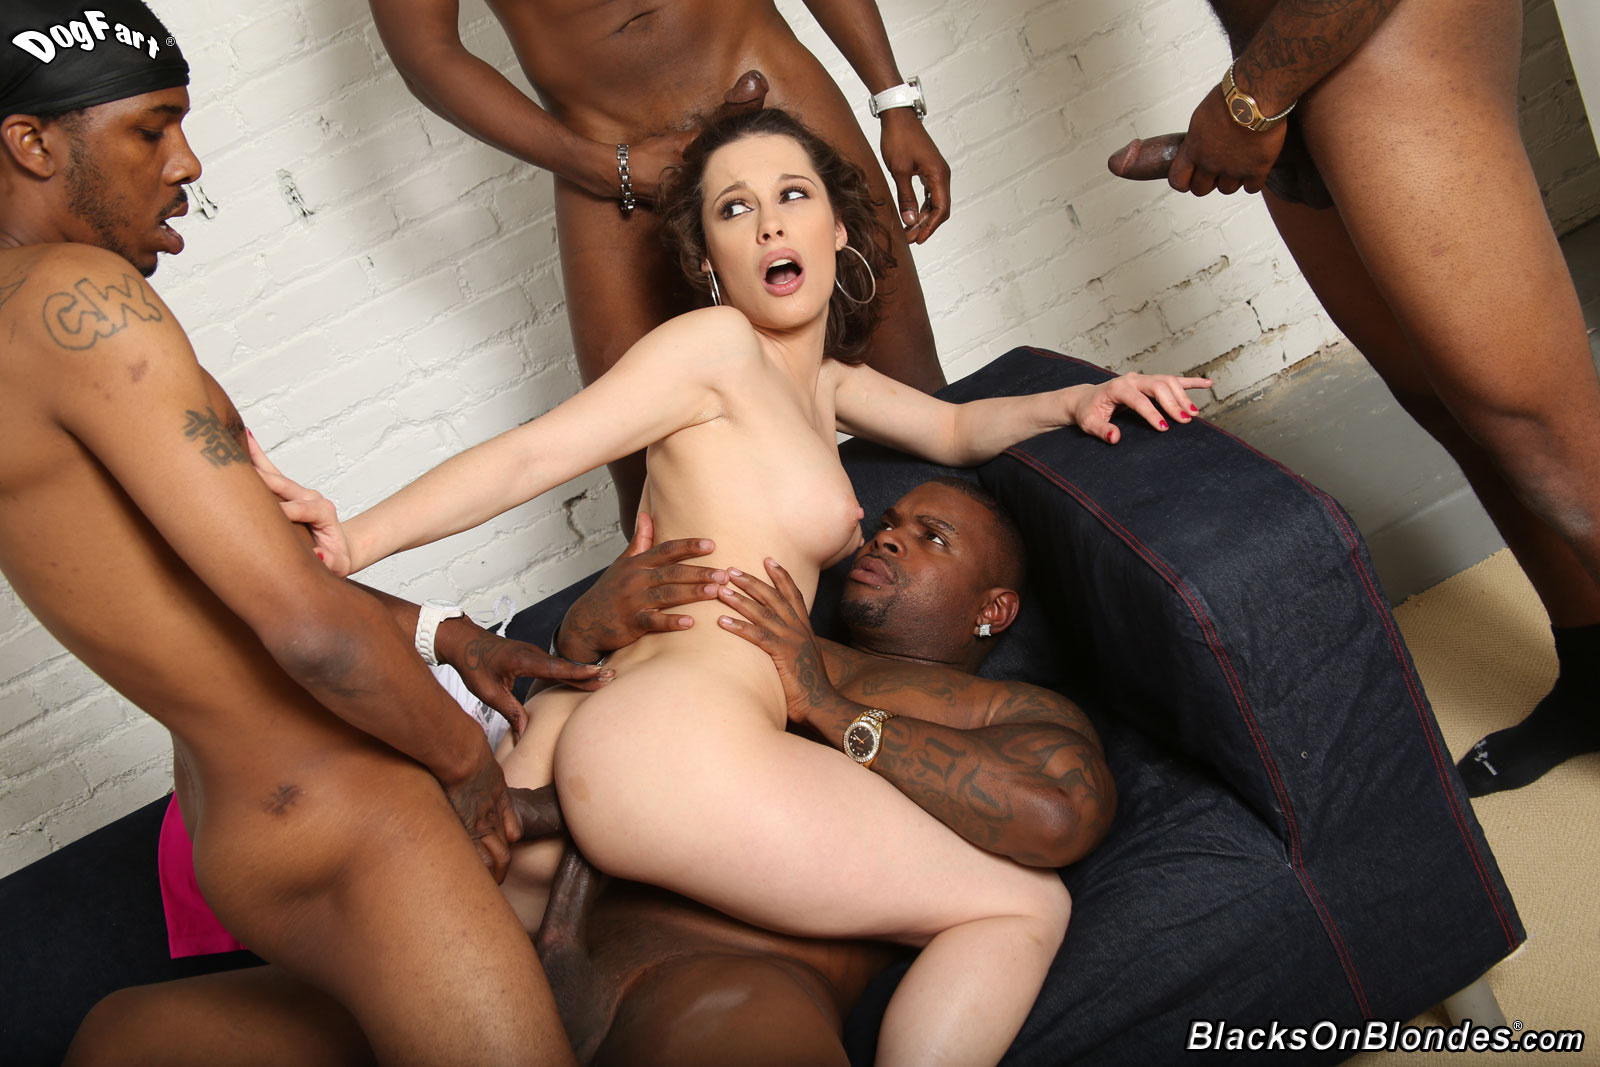 Remarkable, interracial gangbang orgy mine